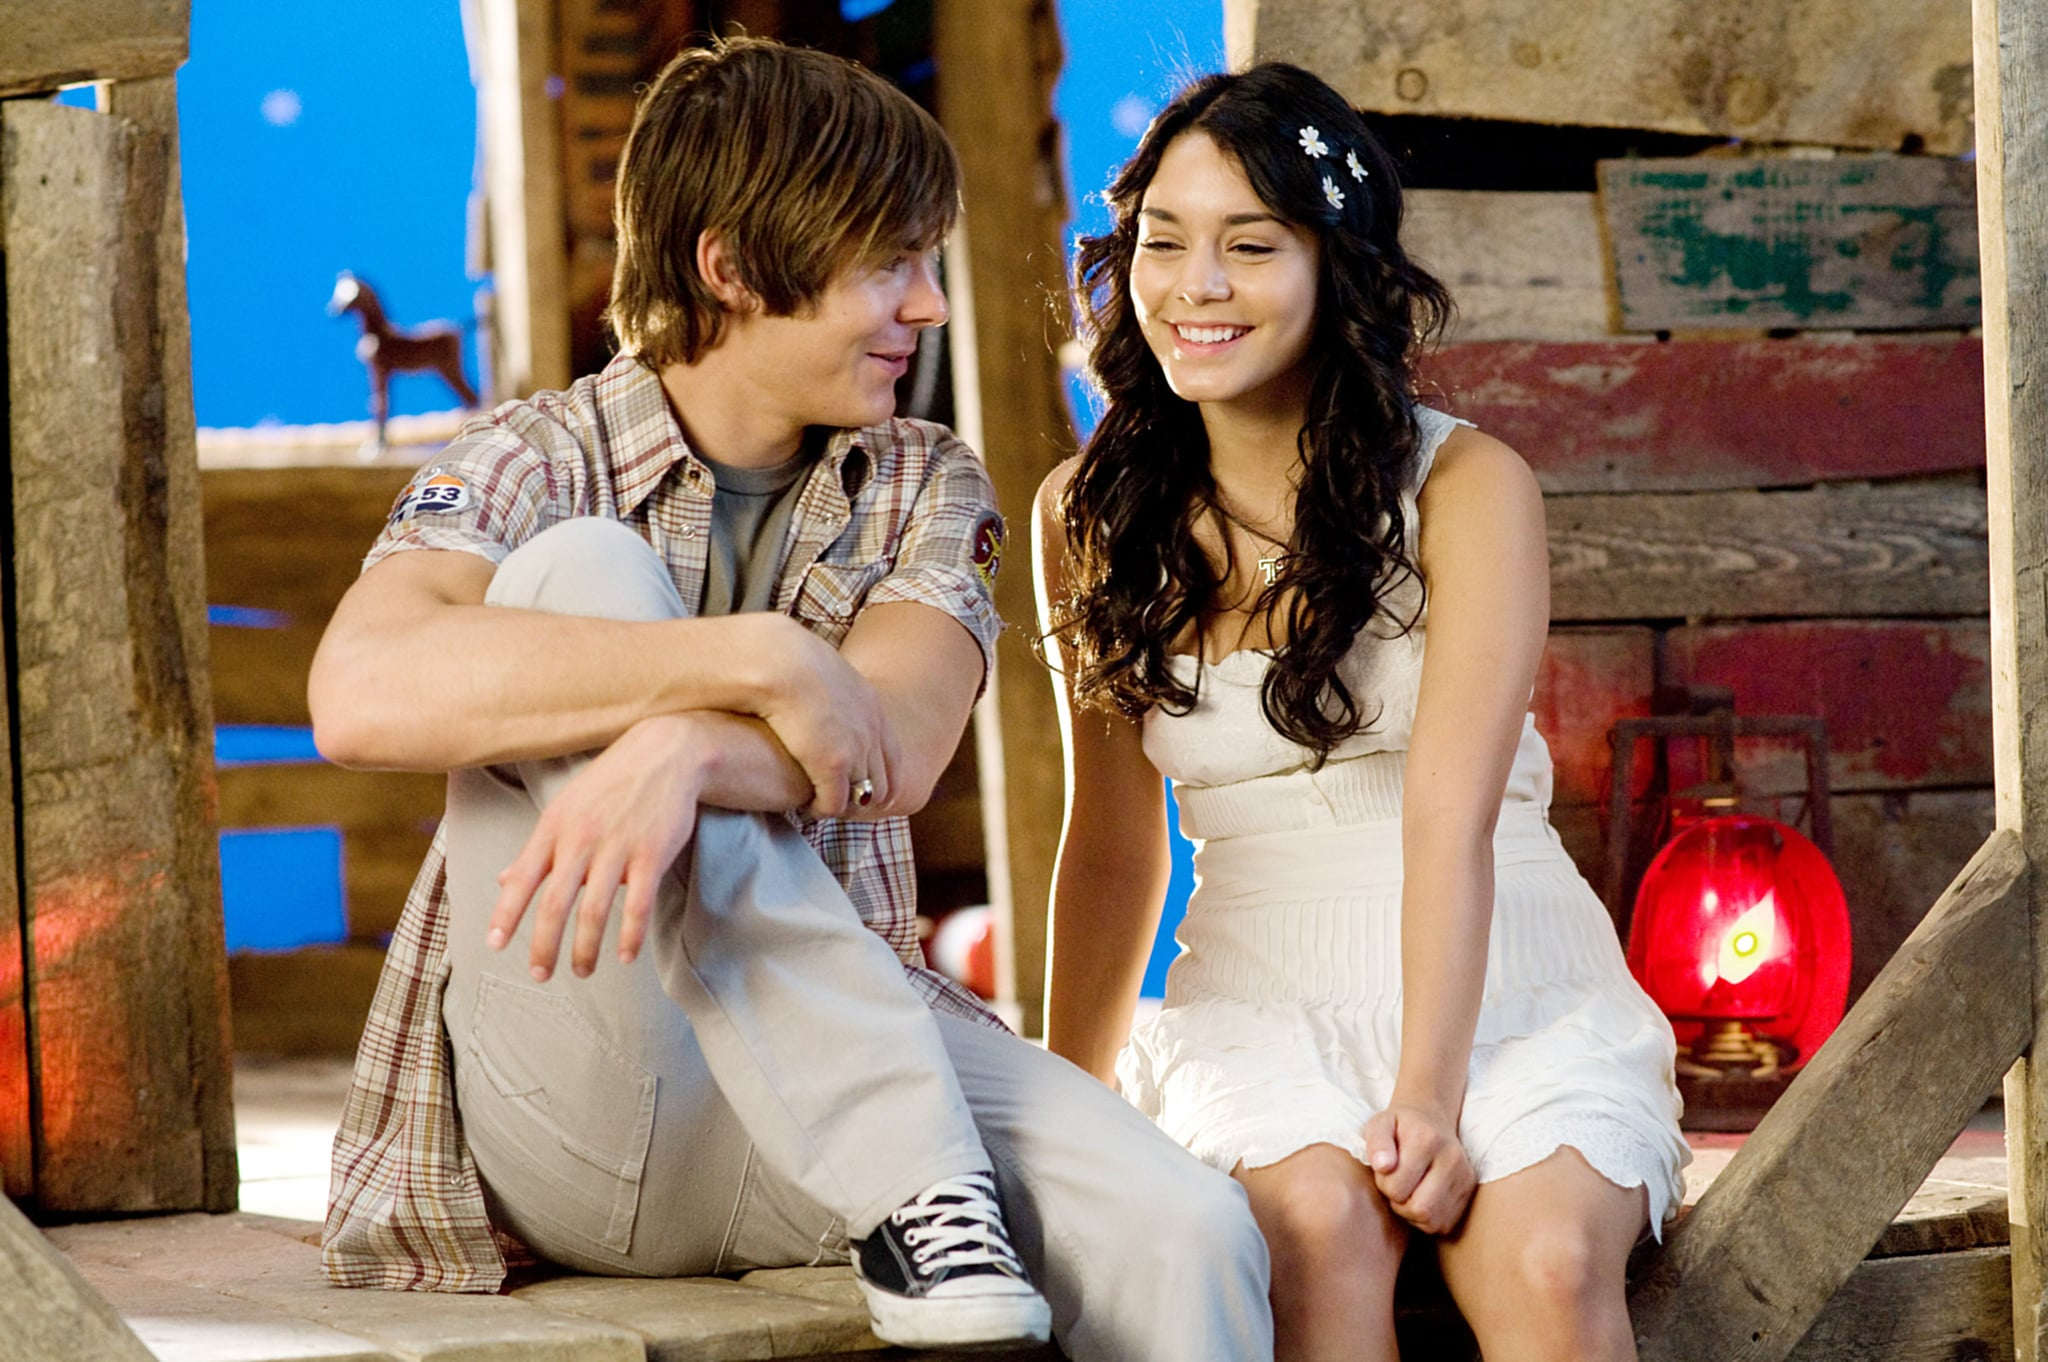 HIGH SCHOOL MUSICAL 3: SENIOR YEAR, from left: Zac Efron, Vanessa Hudgens, 2008. Walt Disney Co./courtesy Everett Collection